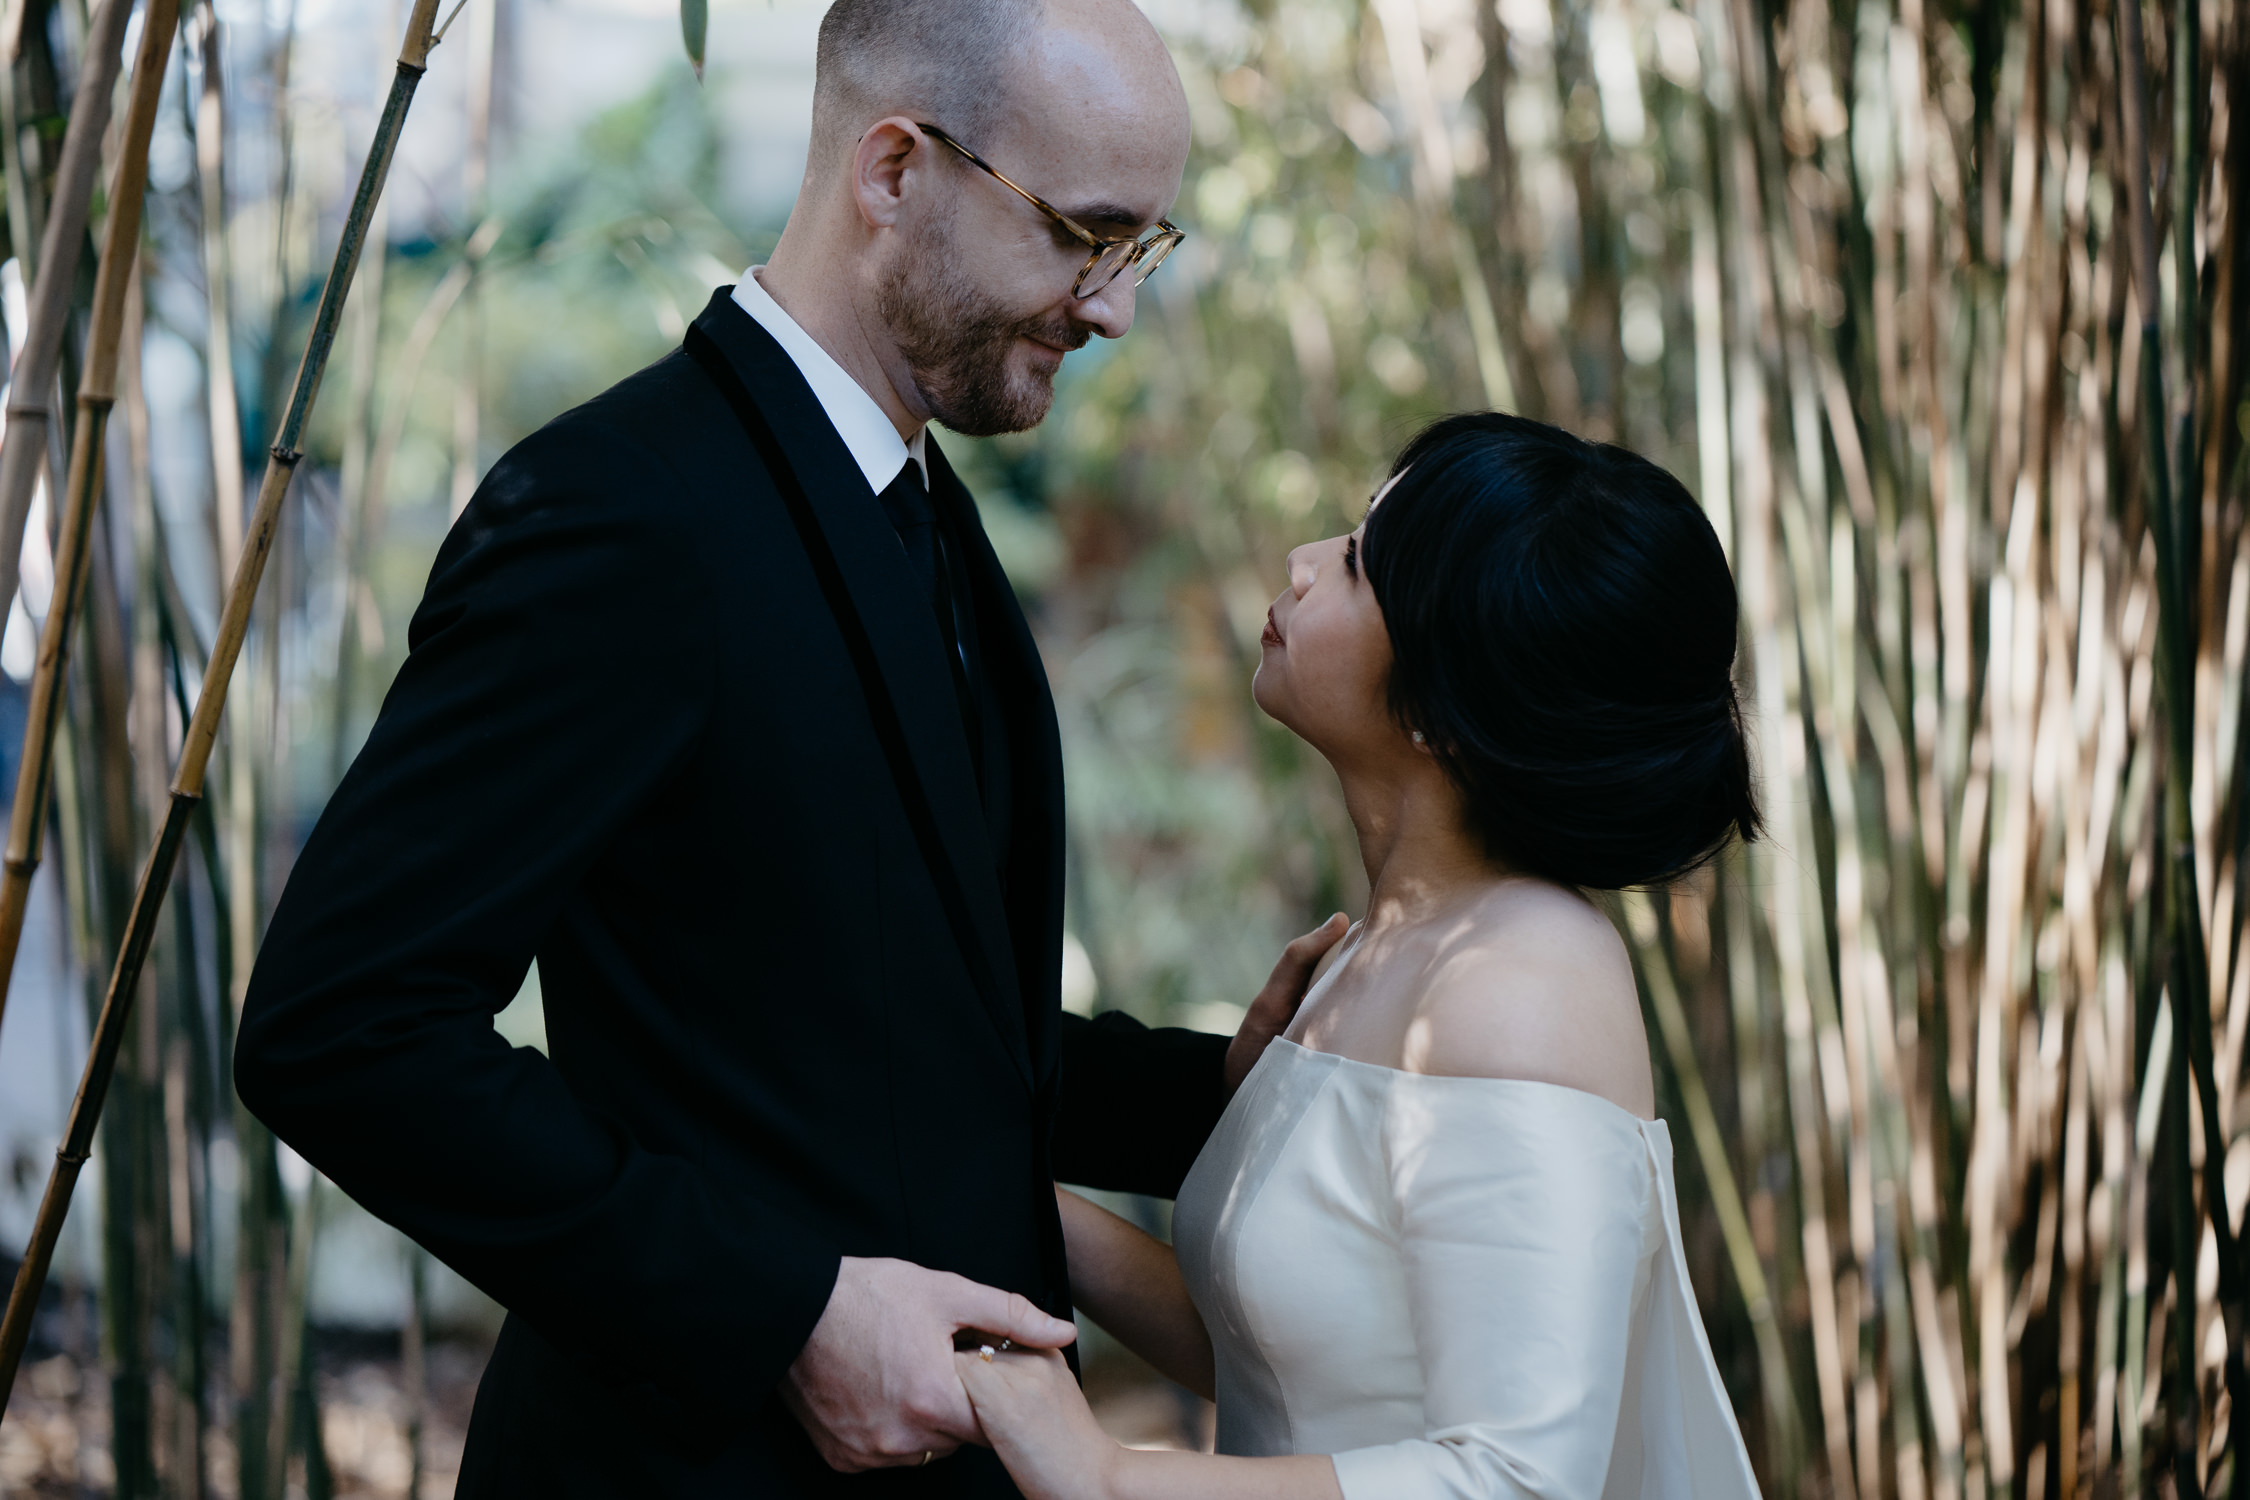 groom and bride marriage ceremony photography Amsterdam hortus